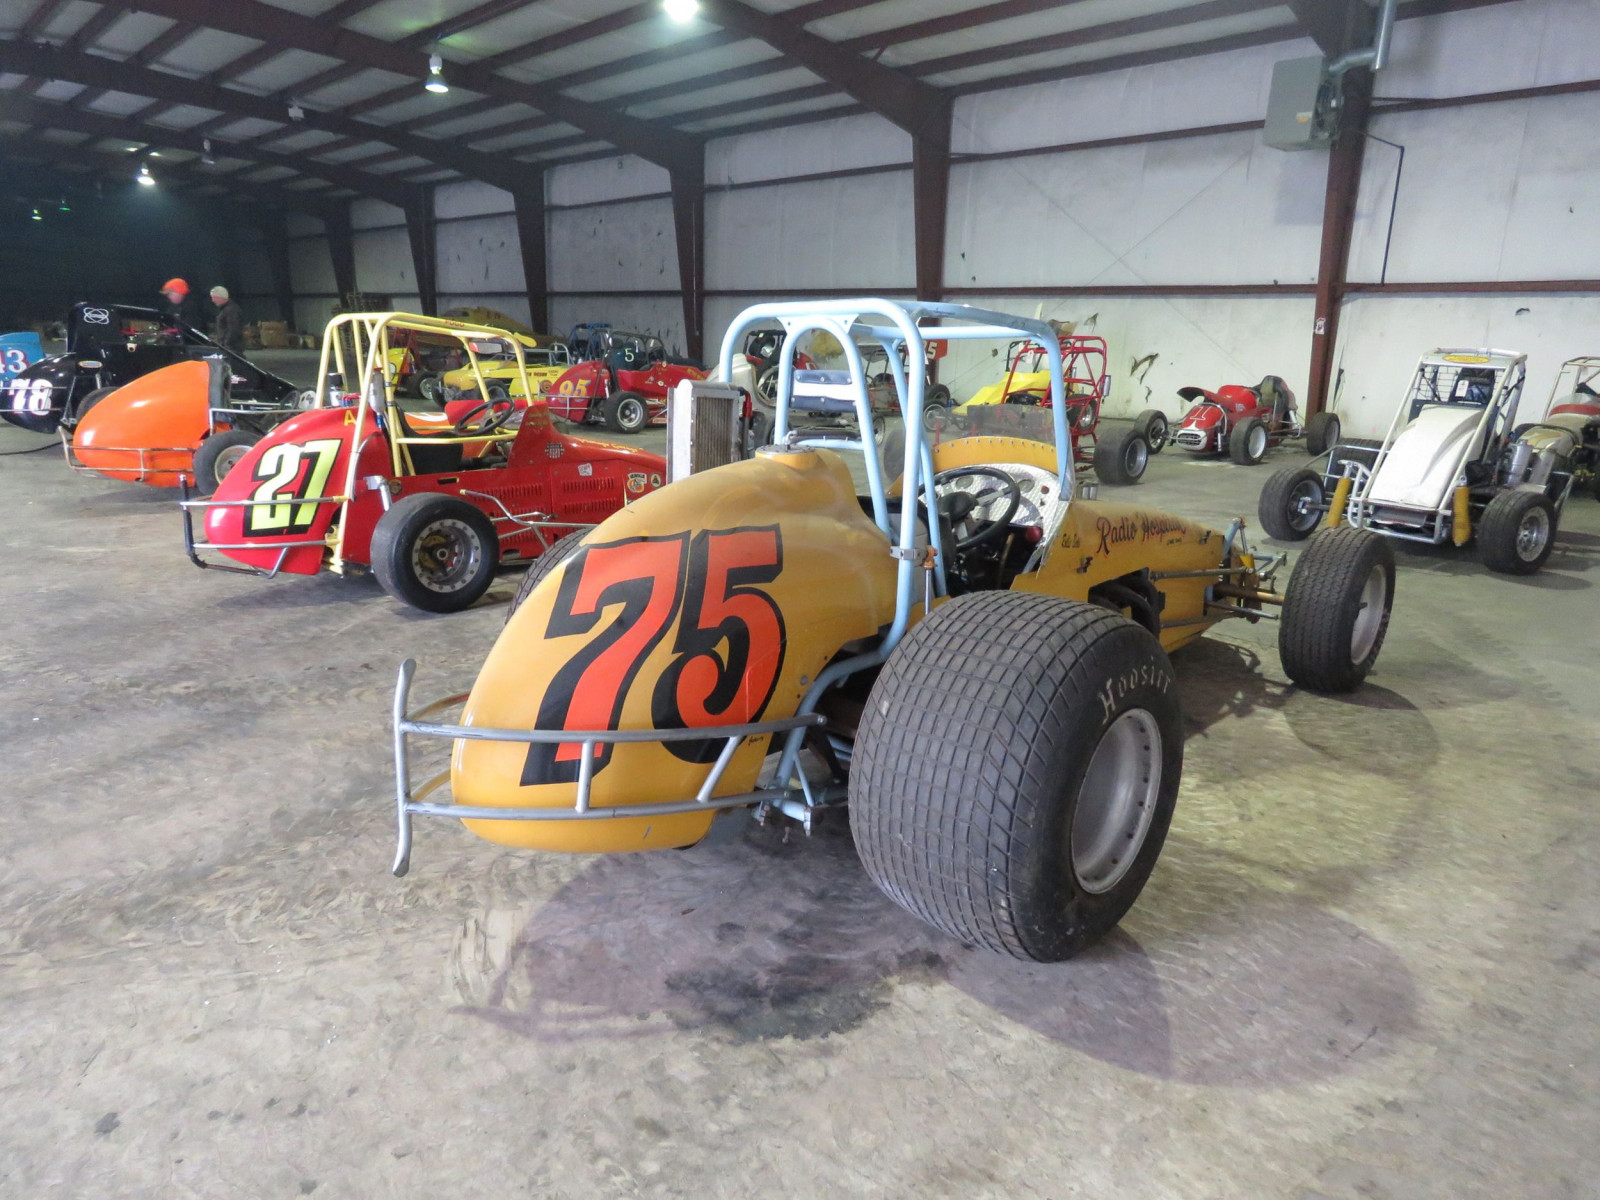 1972 fuel Injected Midget Race Car - Image 6